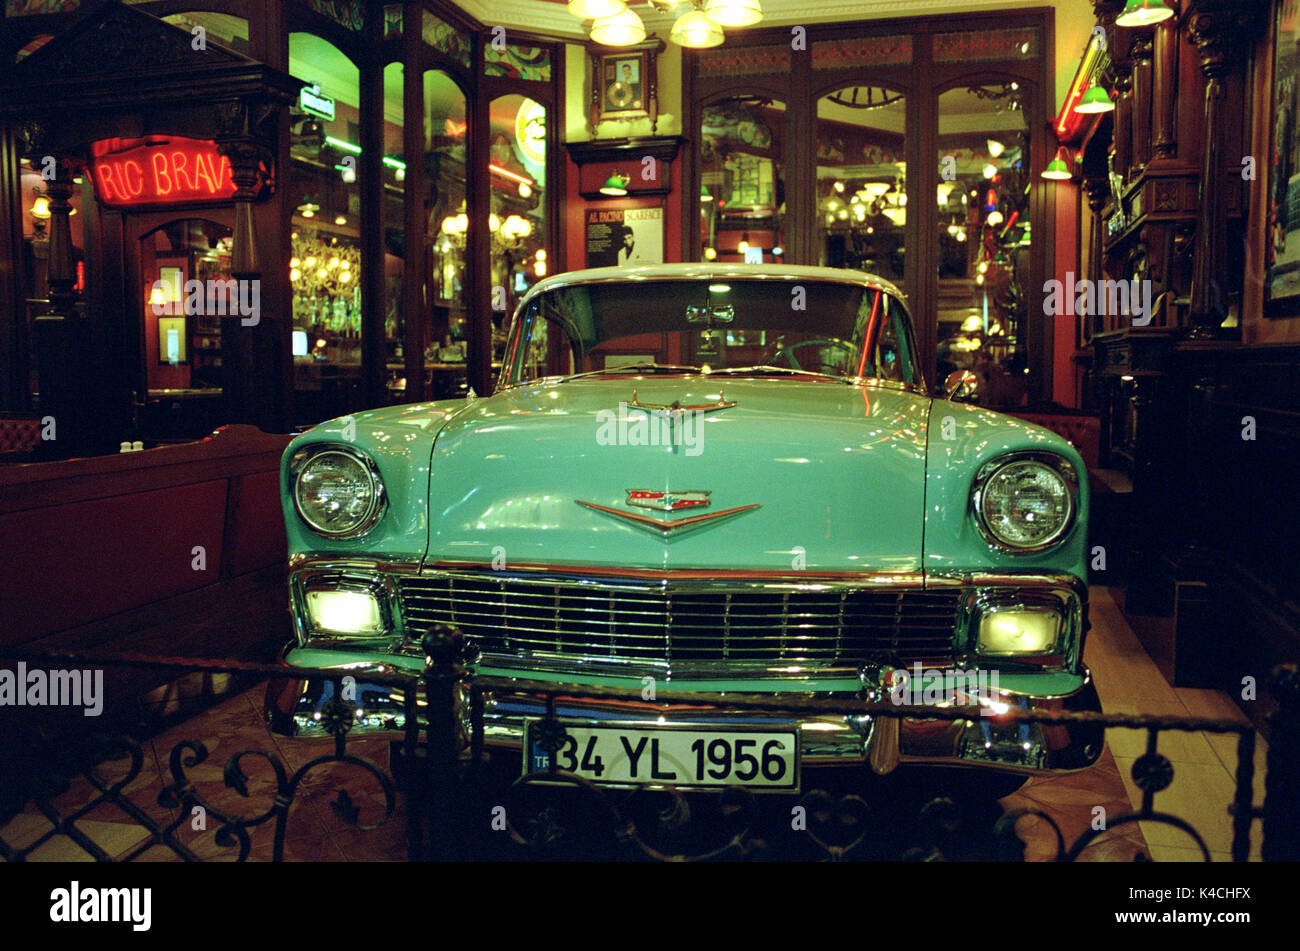 CHEVROLET BEL AIR 1956 - AMERICAN CAR - US VINTAGE CAR - SPEEDLINE RESTYLING - ISTANBUL BAR - SILVER IMAGE © Frédéric BEAUMONT - Stock Image